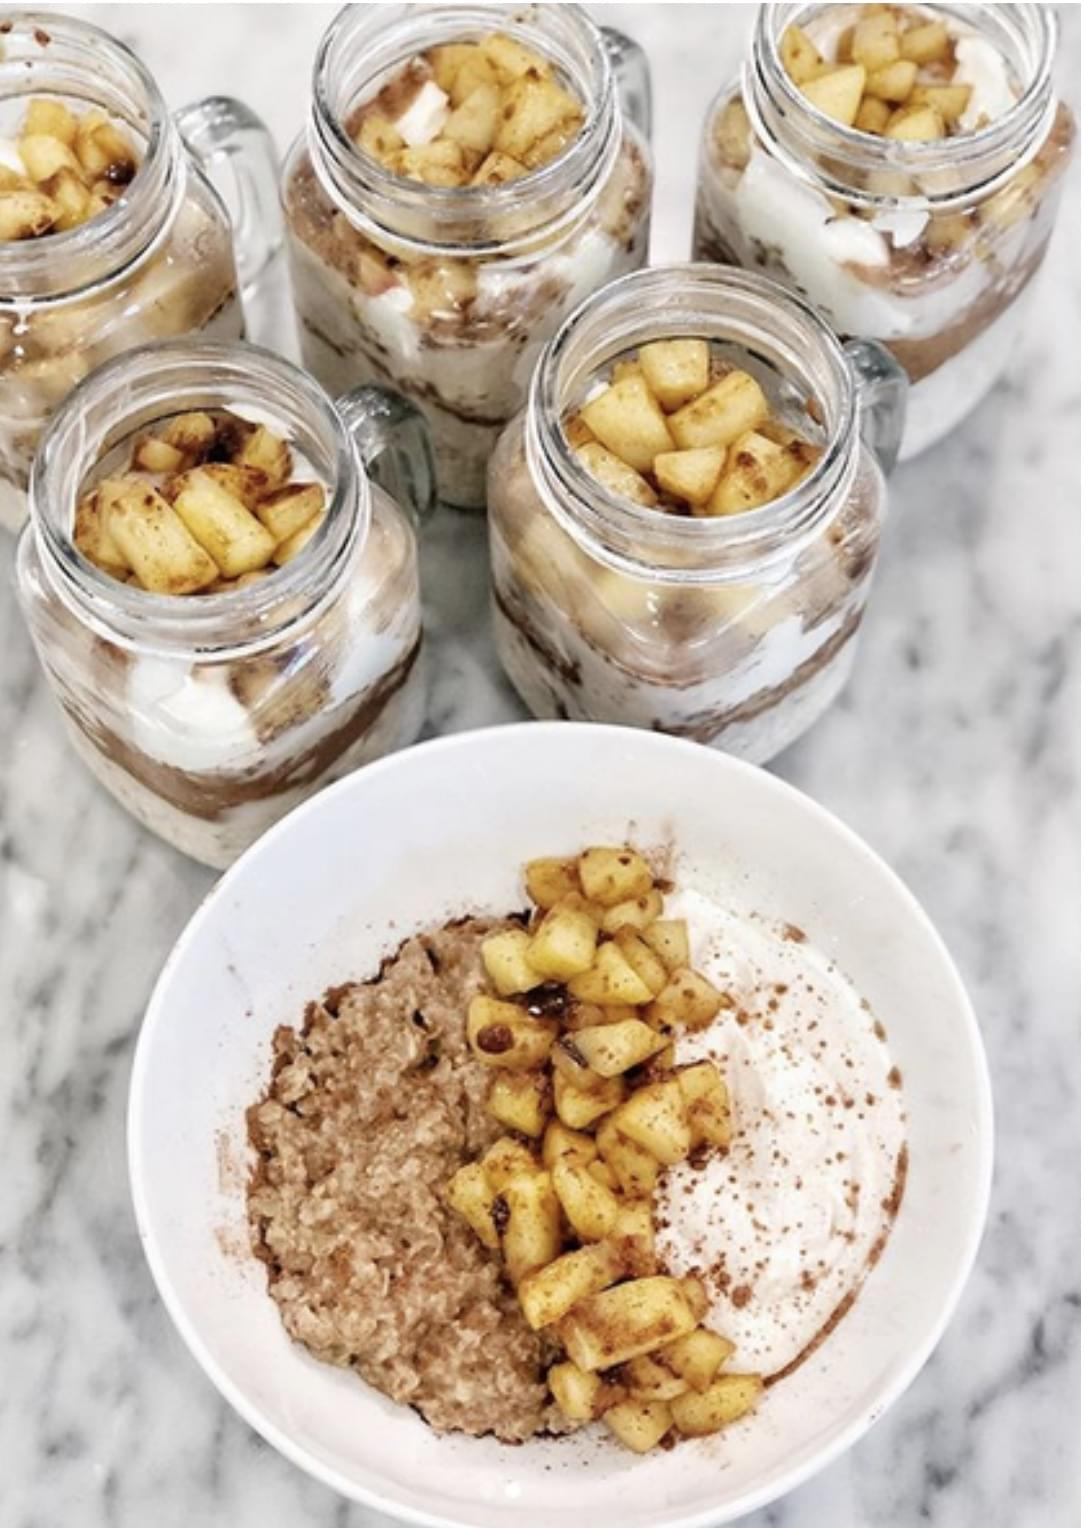 RECIPE: Apple Pie Overnight Oats